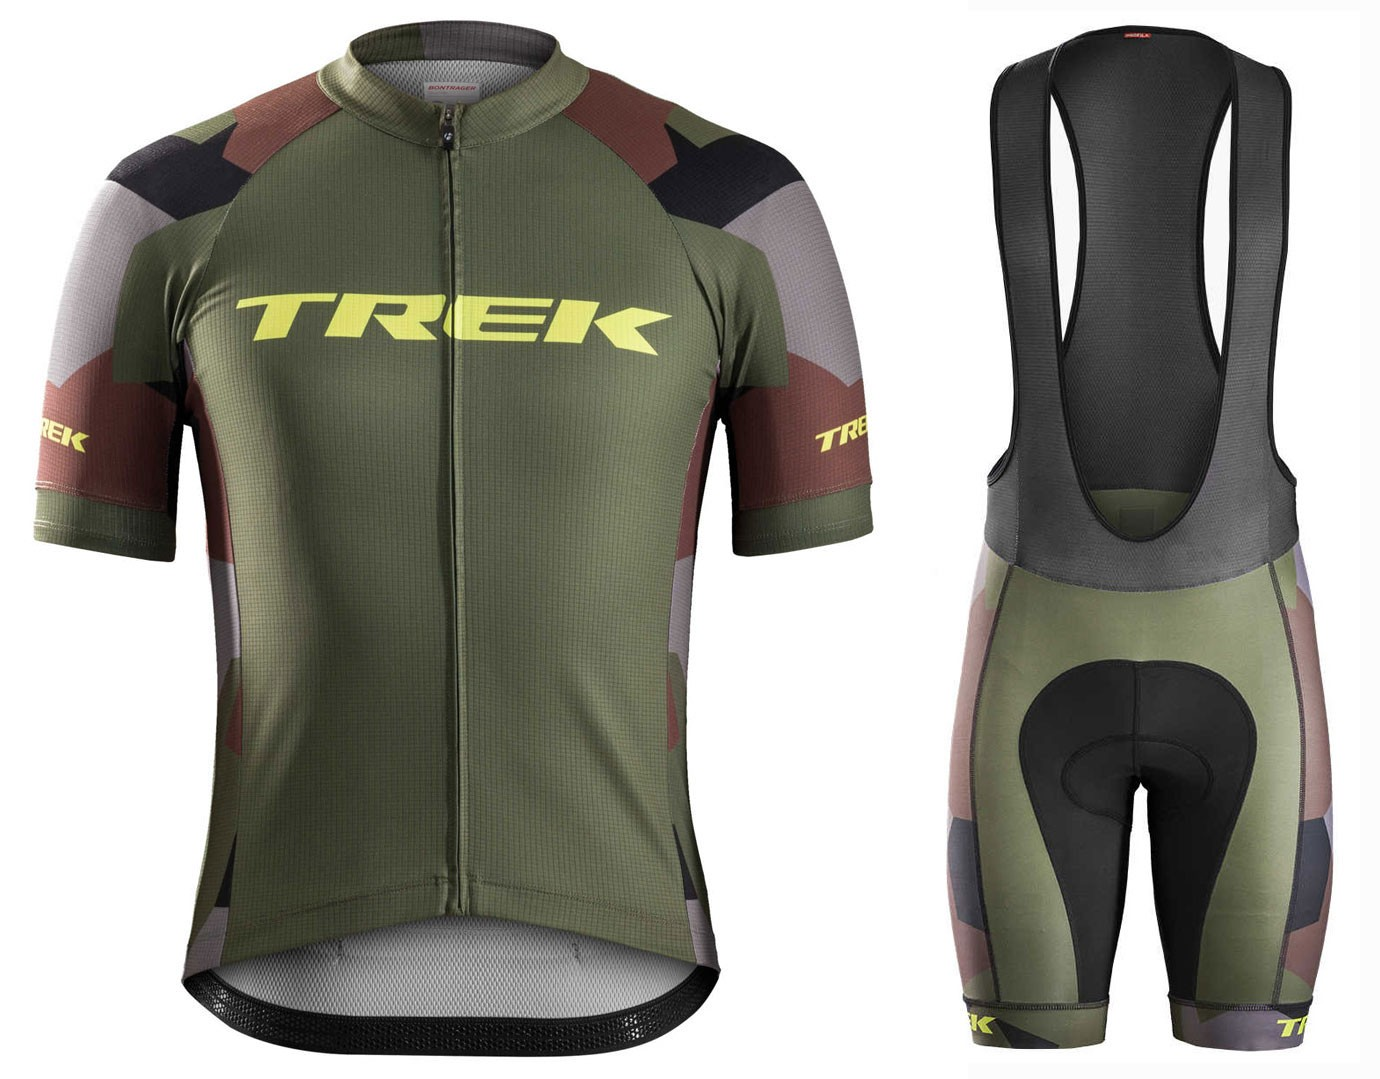 Cycling Jerseys - Wholesale Bontrager ccycling lothing with online ... f4611ead3